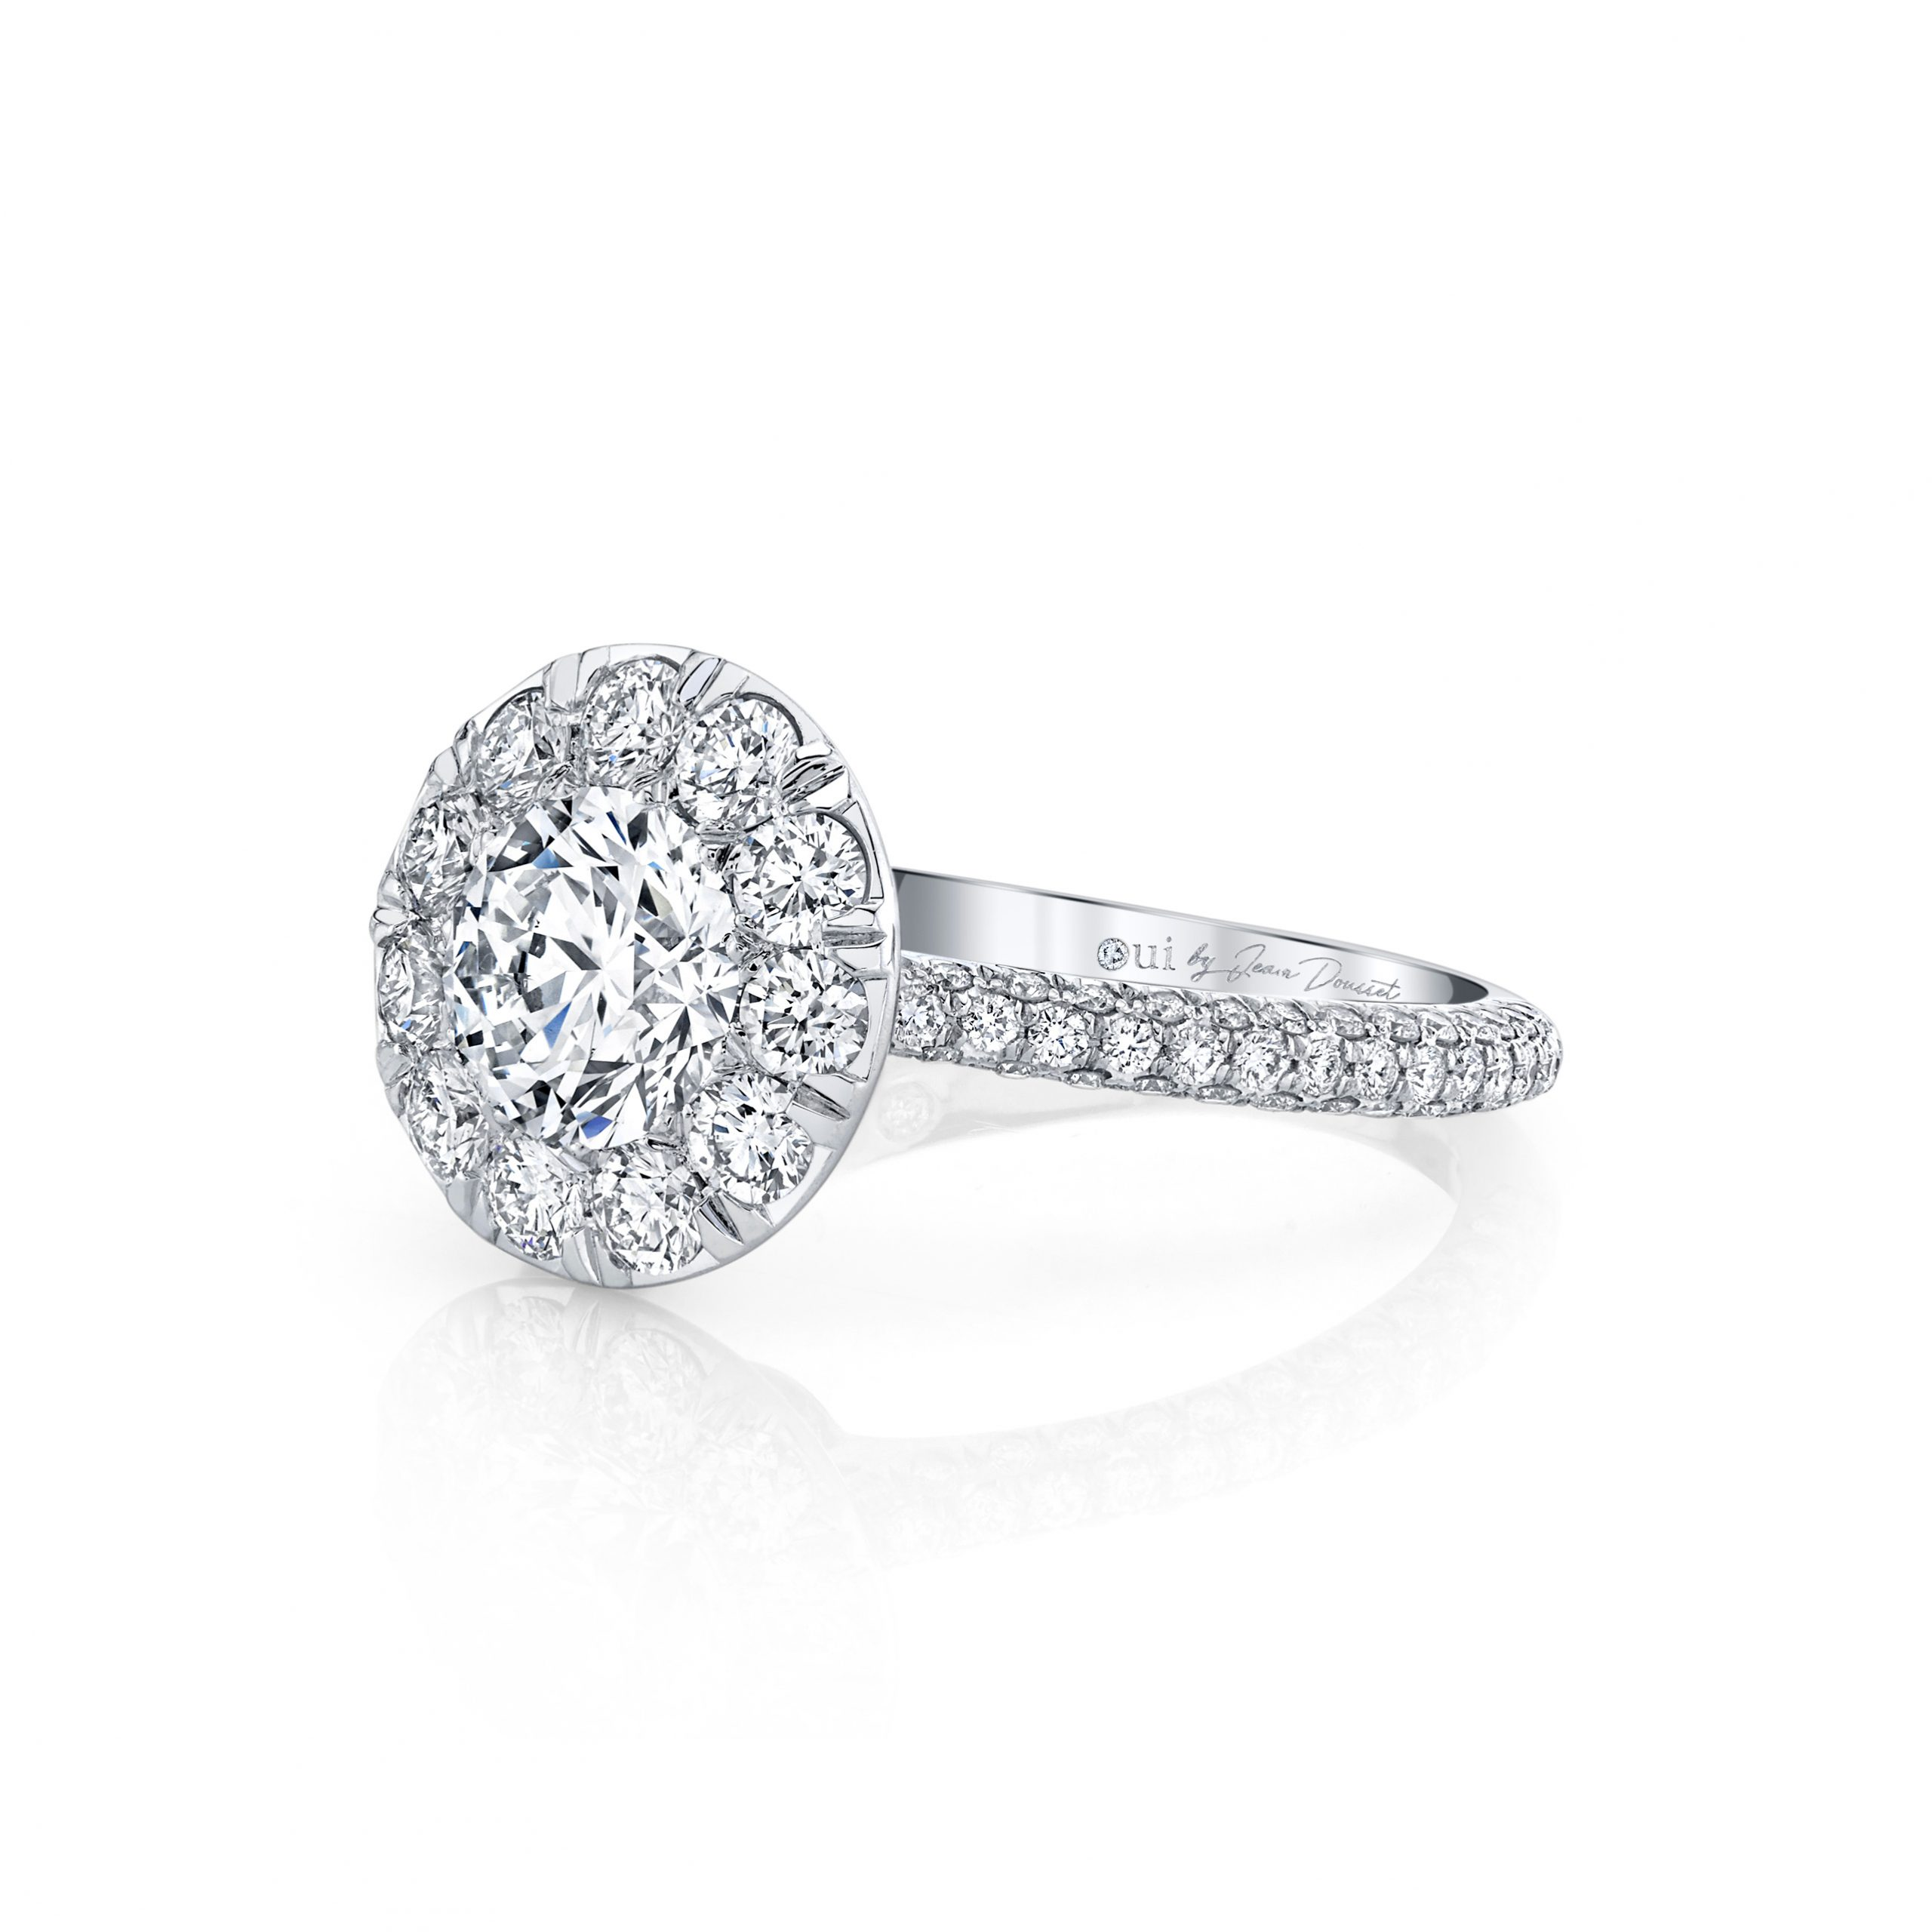 Jacqueline Round Brilliant Seamless Solitaire® Engagement Ring 18k White Gold Side View by Oui by Jean Dousset